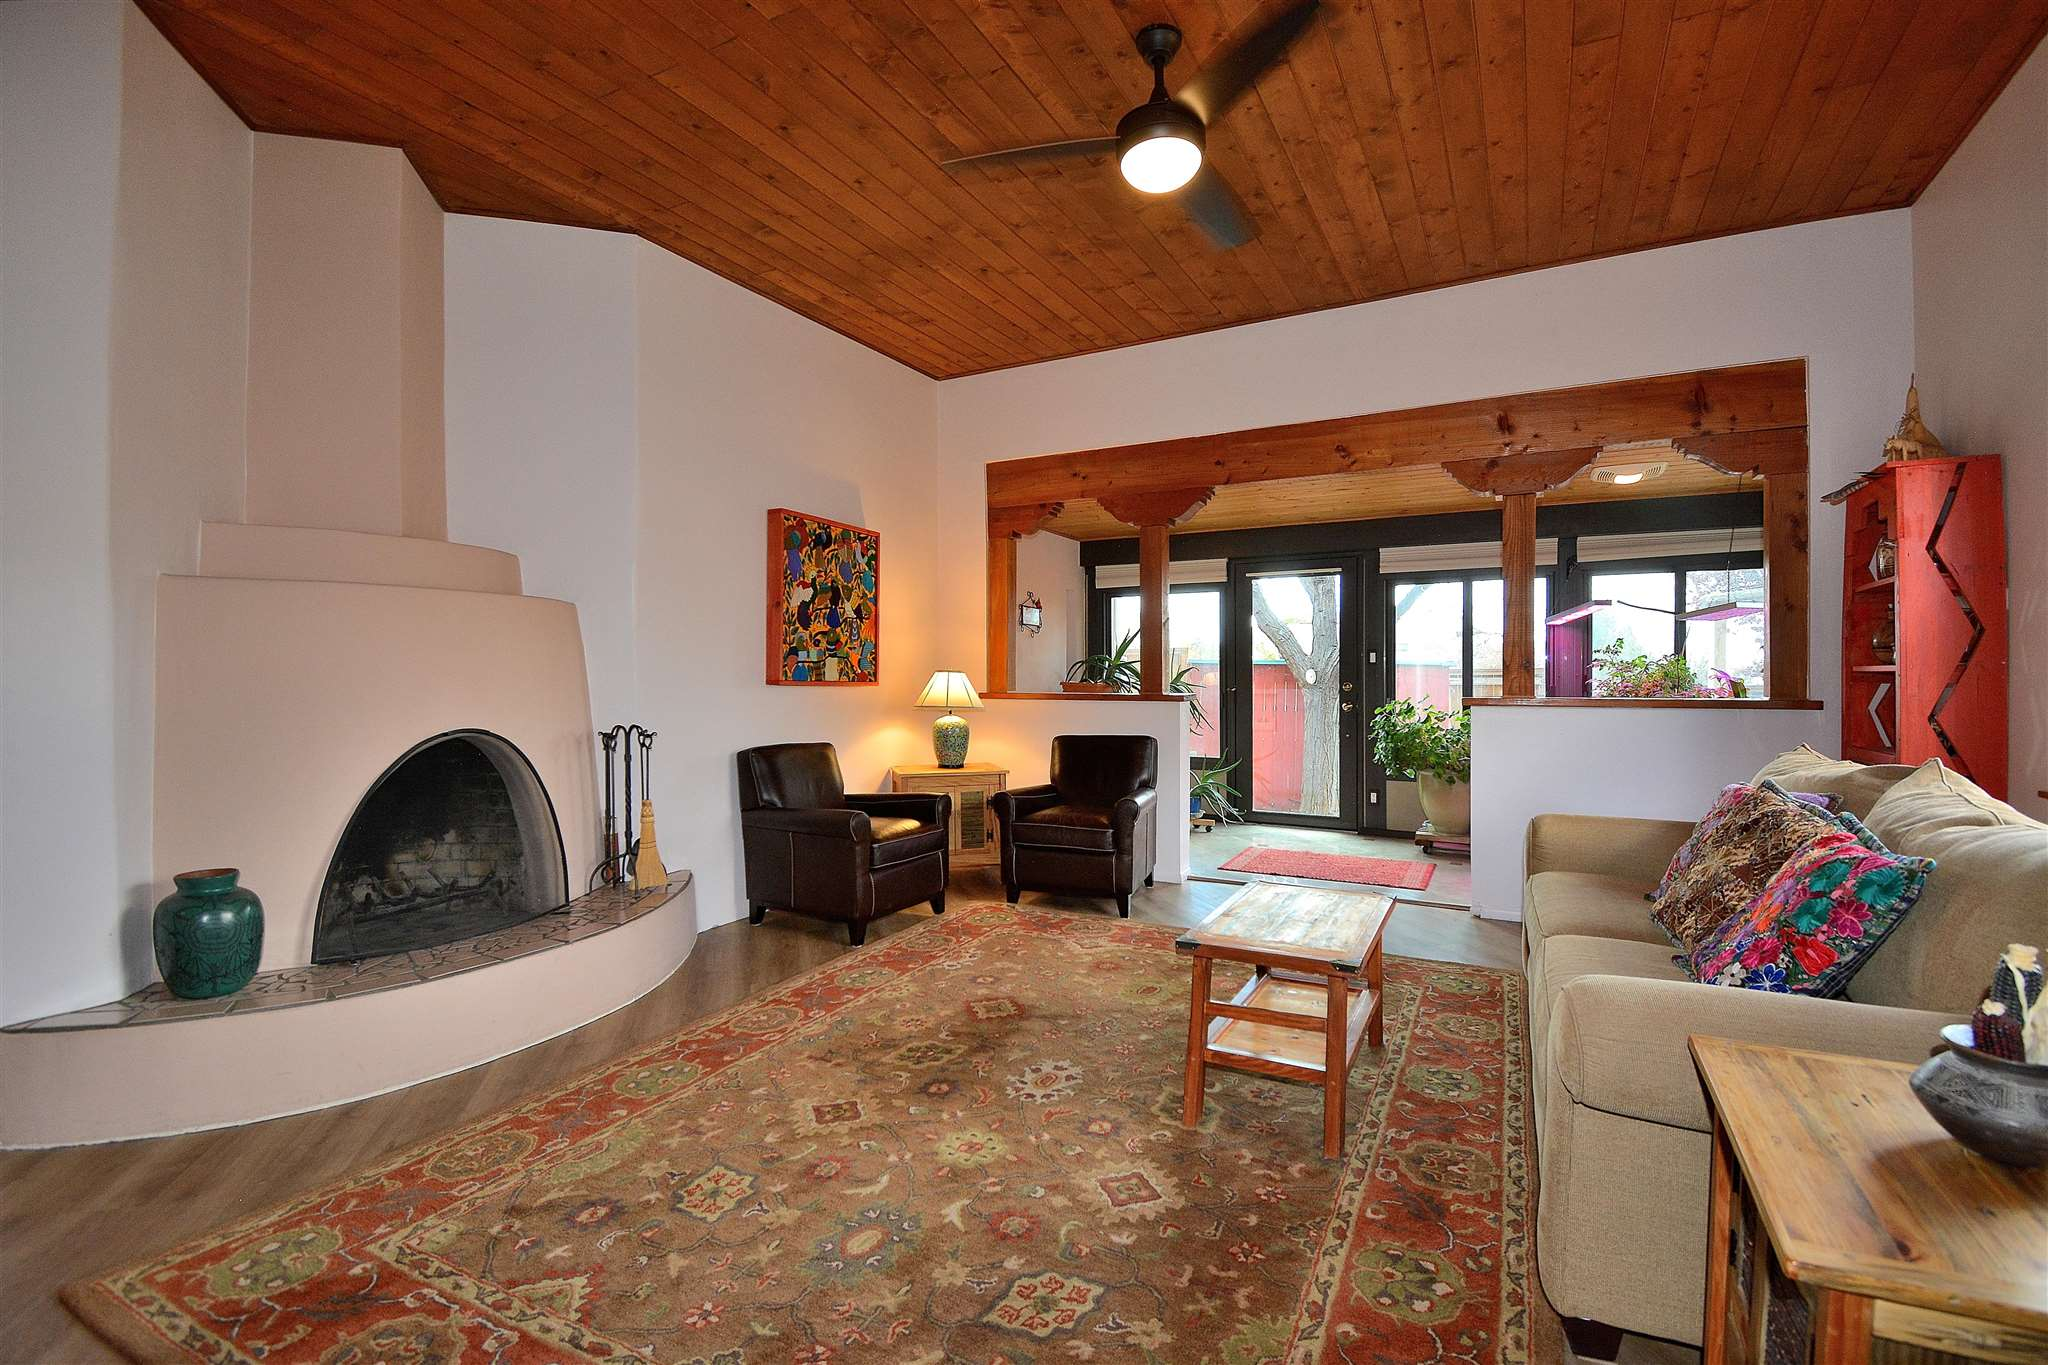 Don't miss this magical, Santa Fe style, single story, single family home in Park Plazas. This home is well-loved and immaculate. Full of light, there are eleven skylights, four in the heated garage and seven inside the home. The flooring in the living room, dining room and bedrooms is new, high quality, luxury, wood-look vinyl. The entry, kitchen, breakfast area and sunroom are tiled. The ceilings in the main living areas are high and beamed. All of the window shades are newer. The house is cooled with two window air conditioners, ceiling fans and a whole house exhaust fan in the garage. Outside is landscaped with a fountain and goldfish pond, grape vines, a raspberry bush and an apple tree with three different types of apples. The sitting area is idyllic and the hot tub tops off this wonderful house with luxury. Park Plazas is centrally located in Santa Fe and offers an oasis-like setting. There are miles of walking trails, tennis courts, off-leash dog park, community garden, and children's play areas. There is also a gated area where residents can store their large vehicles or RV's.